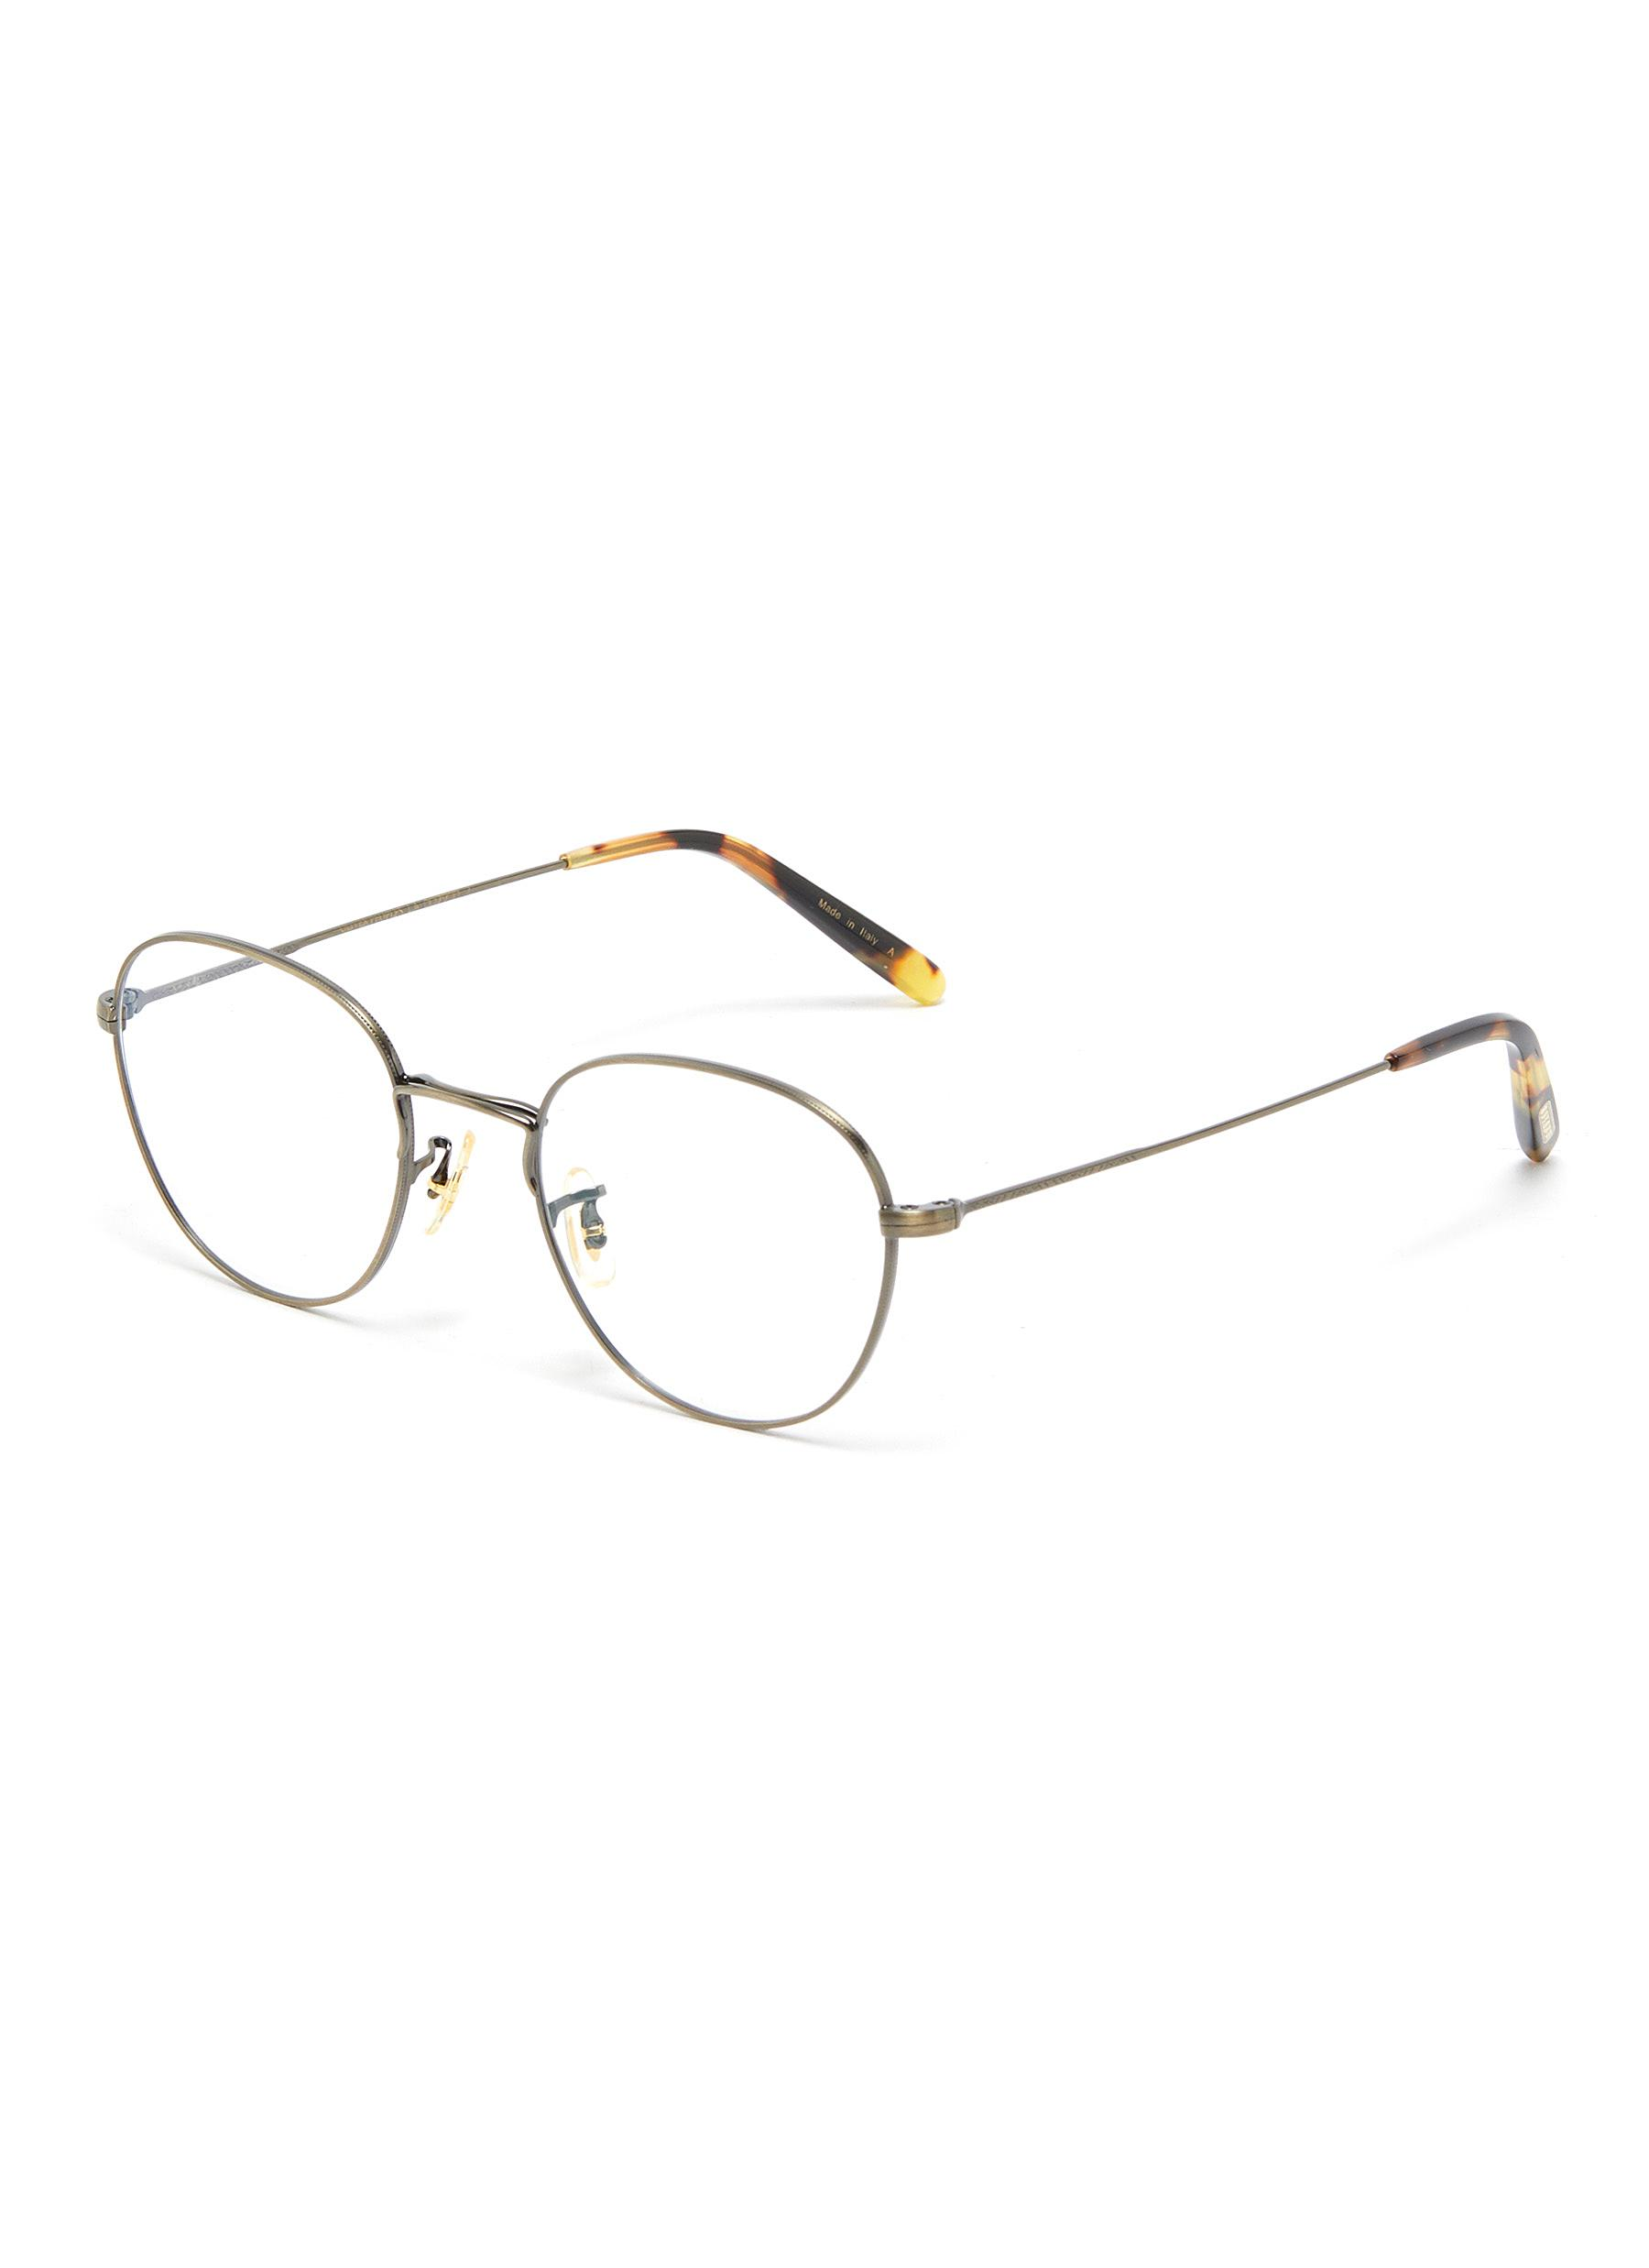 Piercy' Matte Round Frame Optical Glasses - OLIVER PEOPLES ACCESSORIES - Modalova